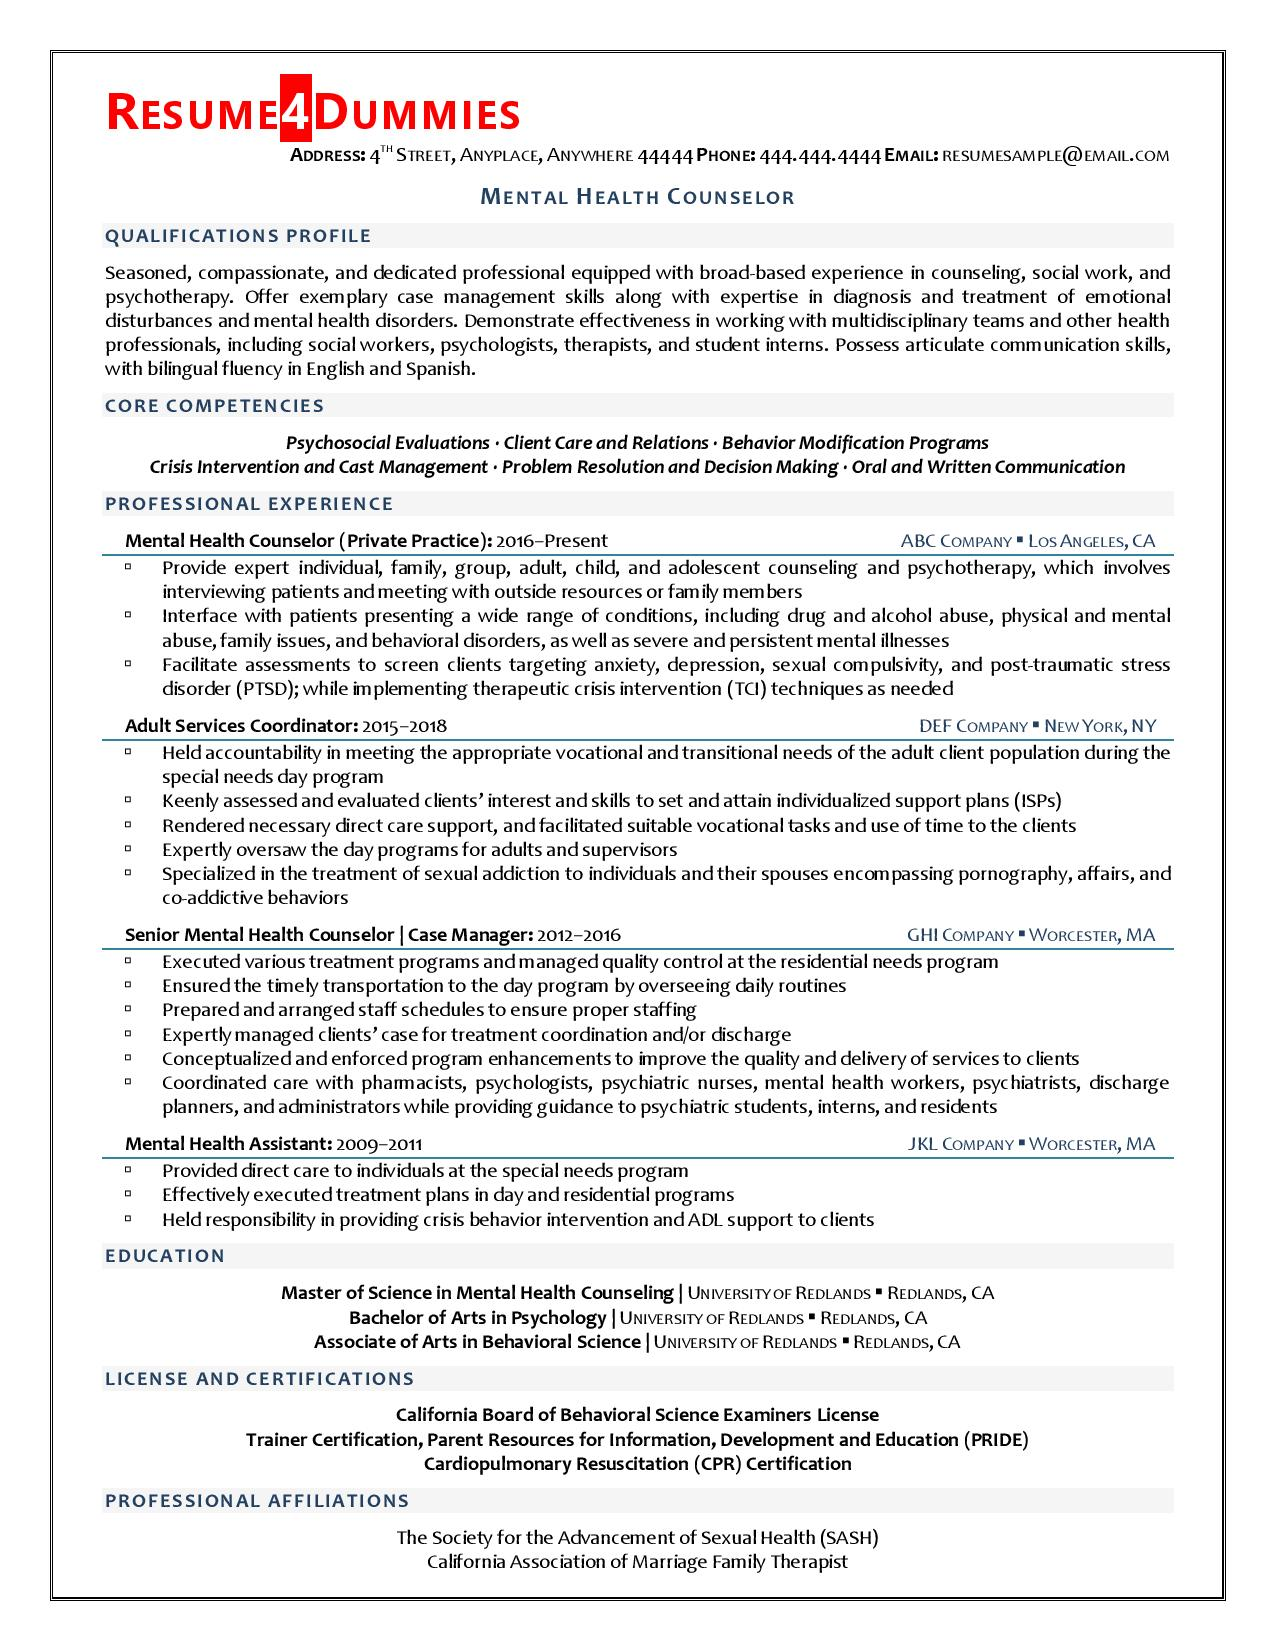 mental health counselor resume example resume4dummies licensed professional fashion Resume Licensed Professional Counselor Resume